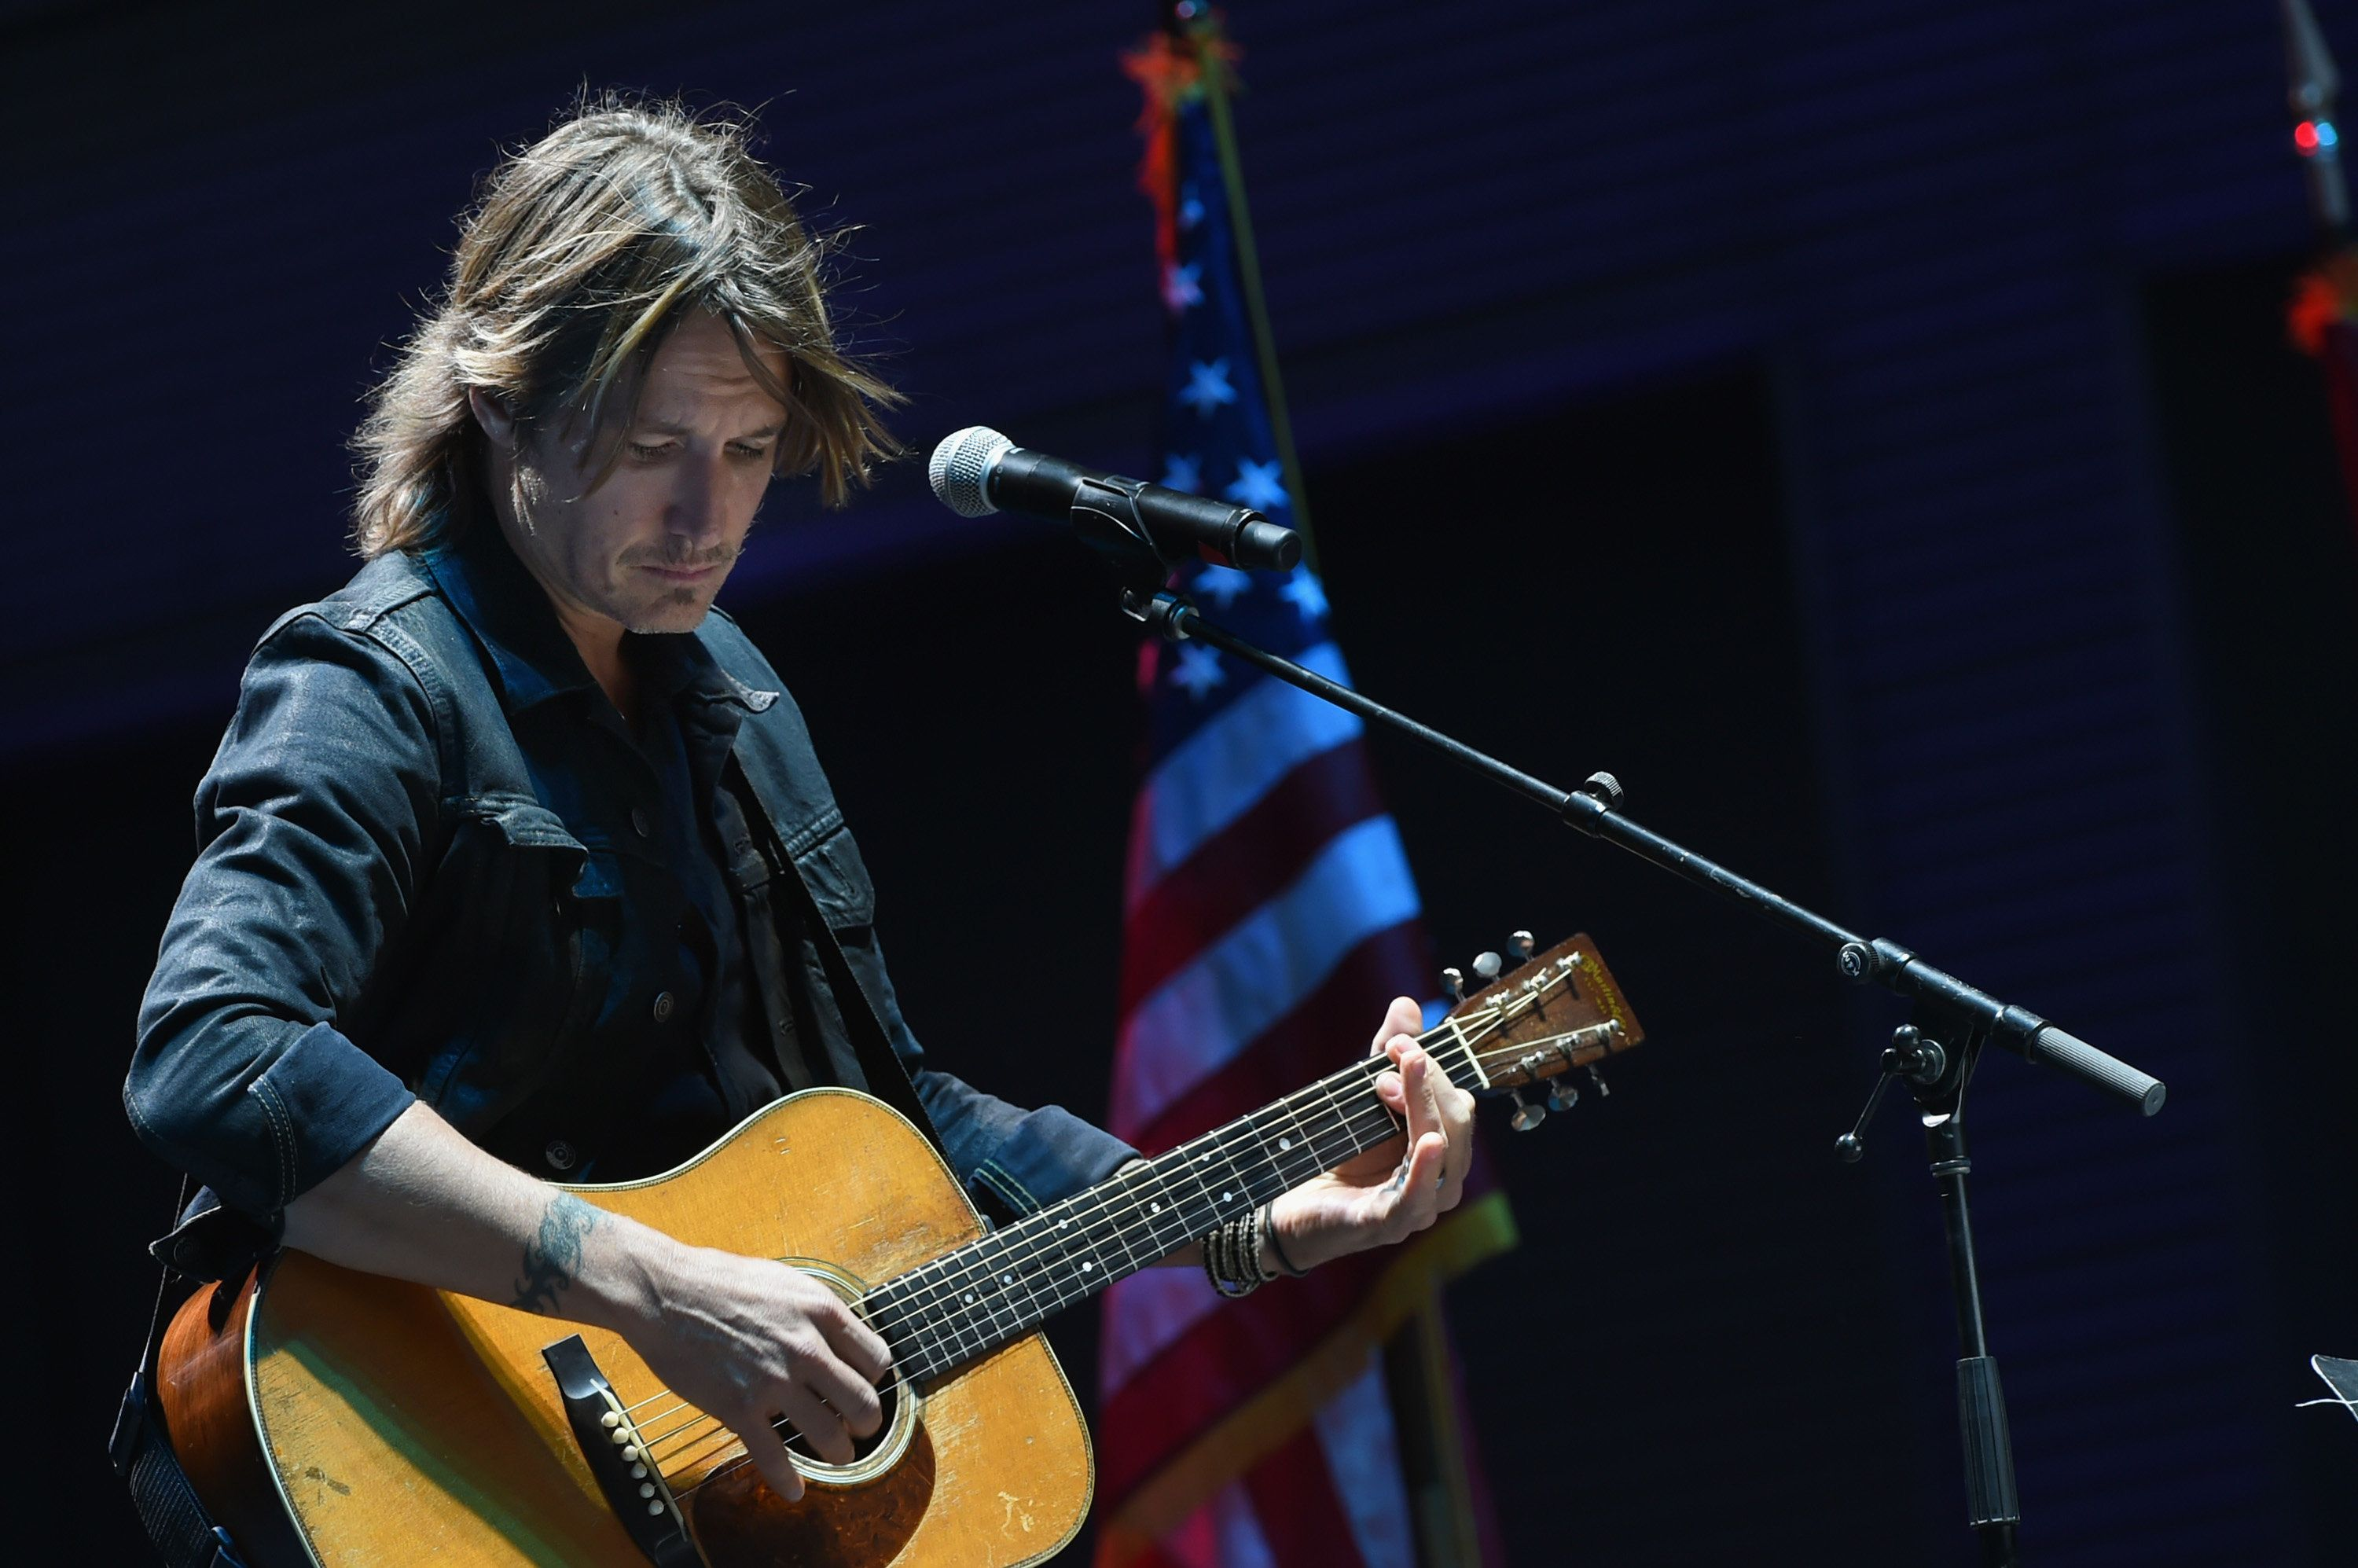 NASHVILLE, TN - OCTOBER 02:  Singer/Songwriter Keith Urban performs 'Bridge Over Troubled Water' during Nashville Candelight Vigil For Las Vegas at Ascend Amphitheater on October 2, 2017 in Nashville, Tennessee.  Late Sunday night, a lone gunman, Stephan Paddock, 64, of Mesquite, Nevada, opened fire on attendees at the Route 91 Harvest Festival, a three-day country music festival, leaving at least 59 dead and over 500 injured before killing himself.  The massacre is one of the deadliest mass shooting events in U.S. history.  (Photo by Rick Diamond/Getty Images)